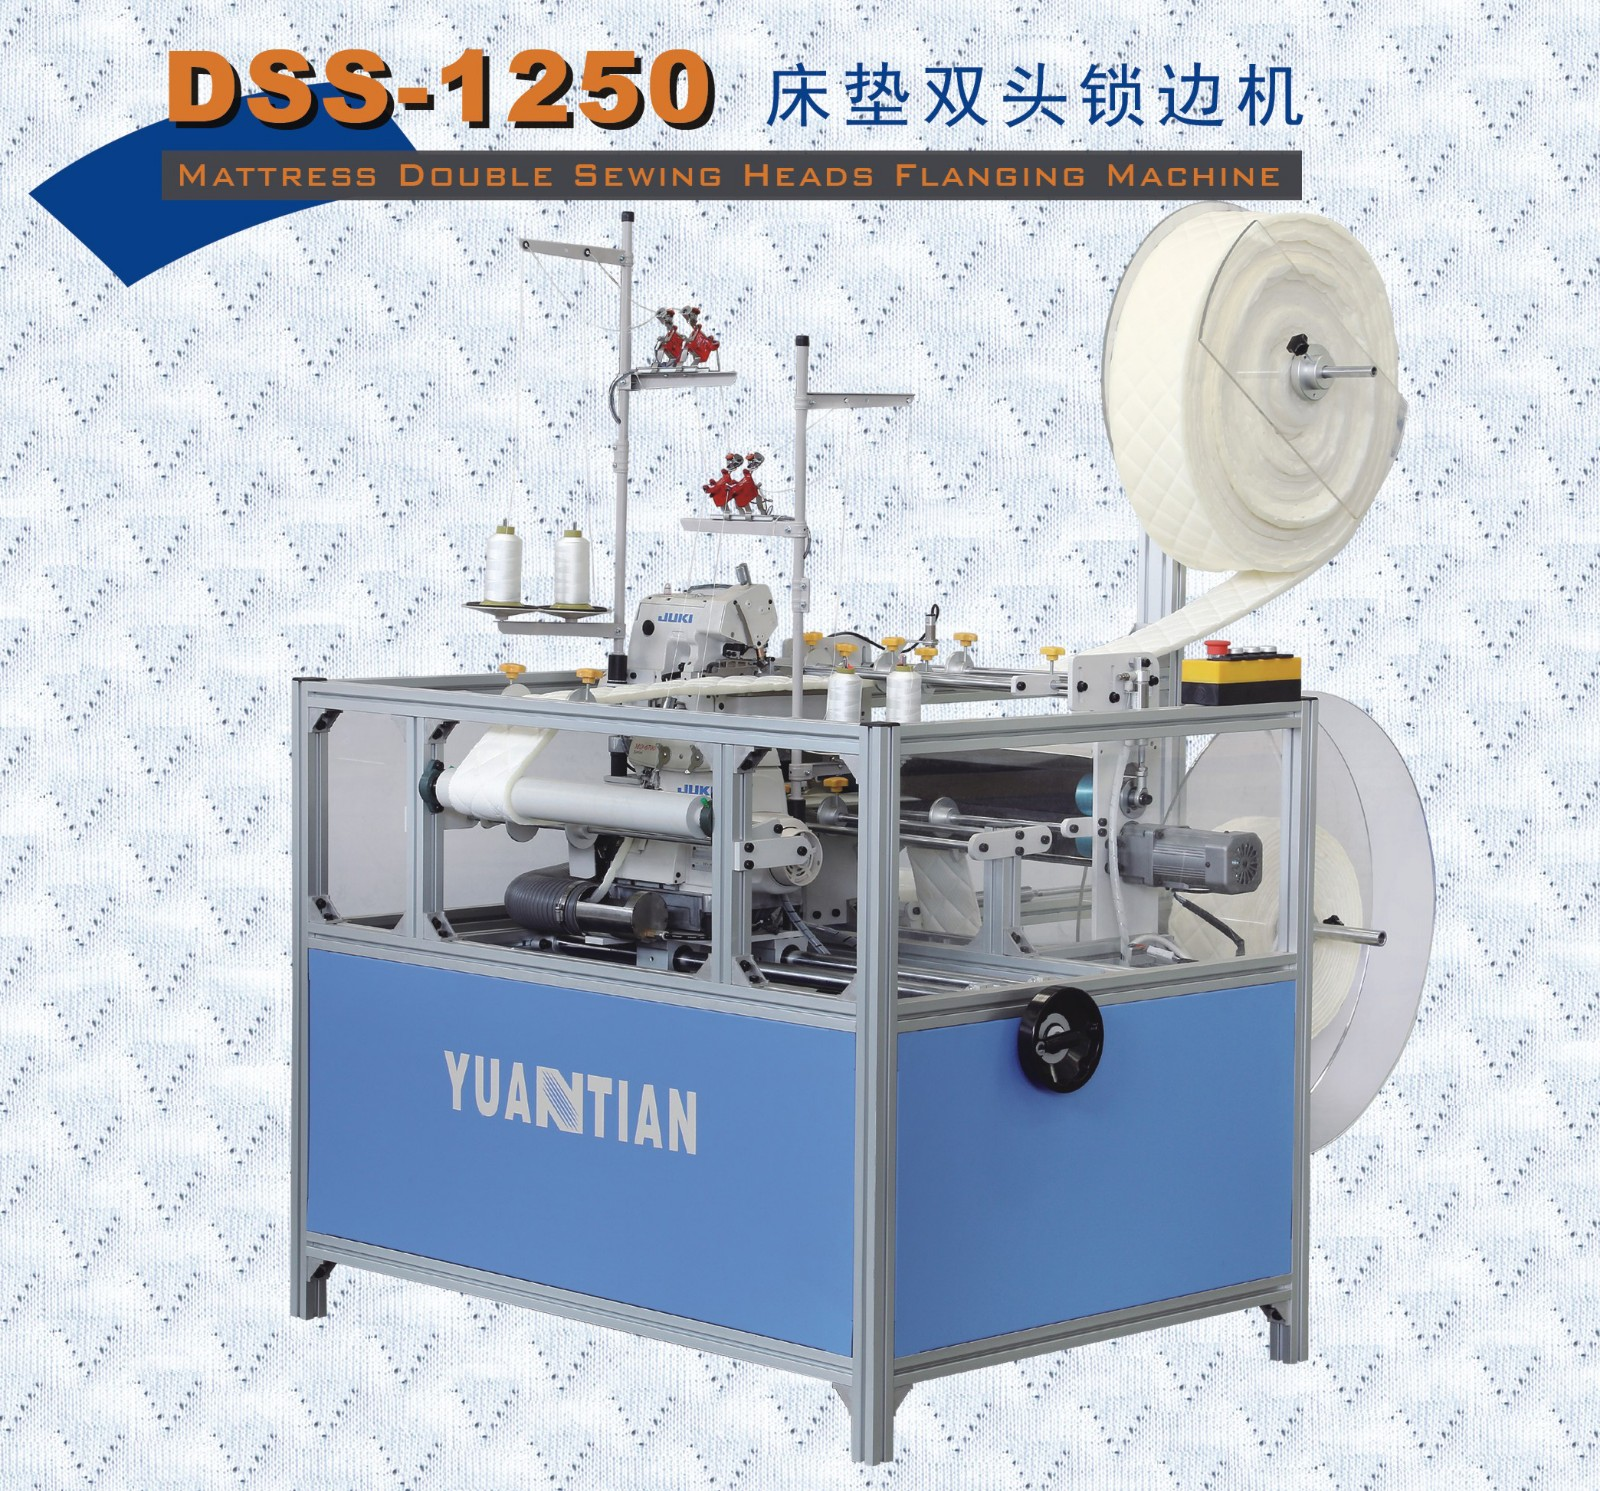 heads mattress Mattress Flanging Machine machine YUANTIAN Mattress Machines